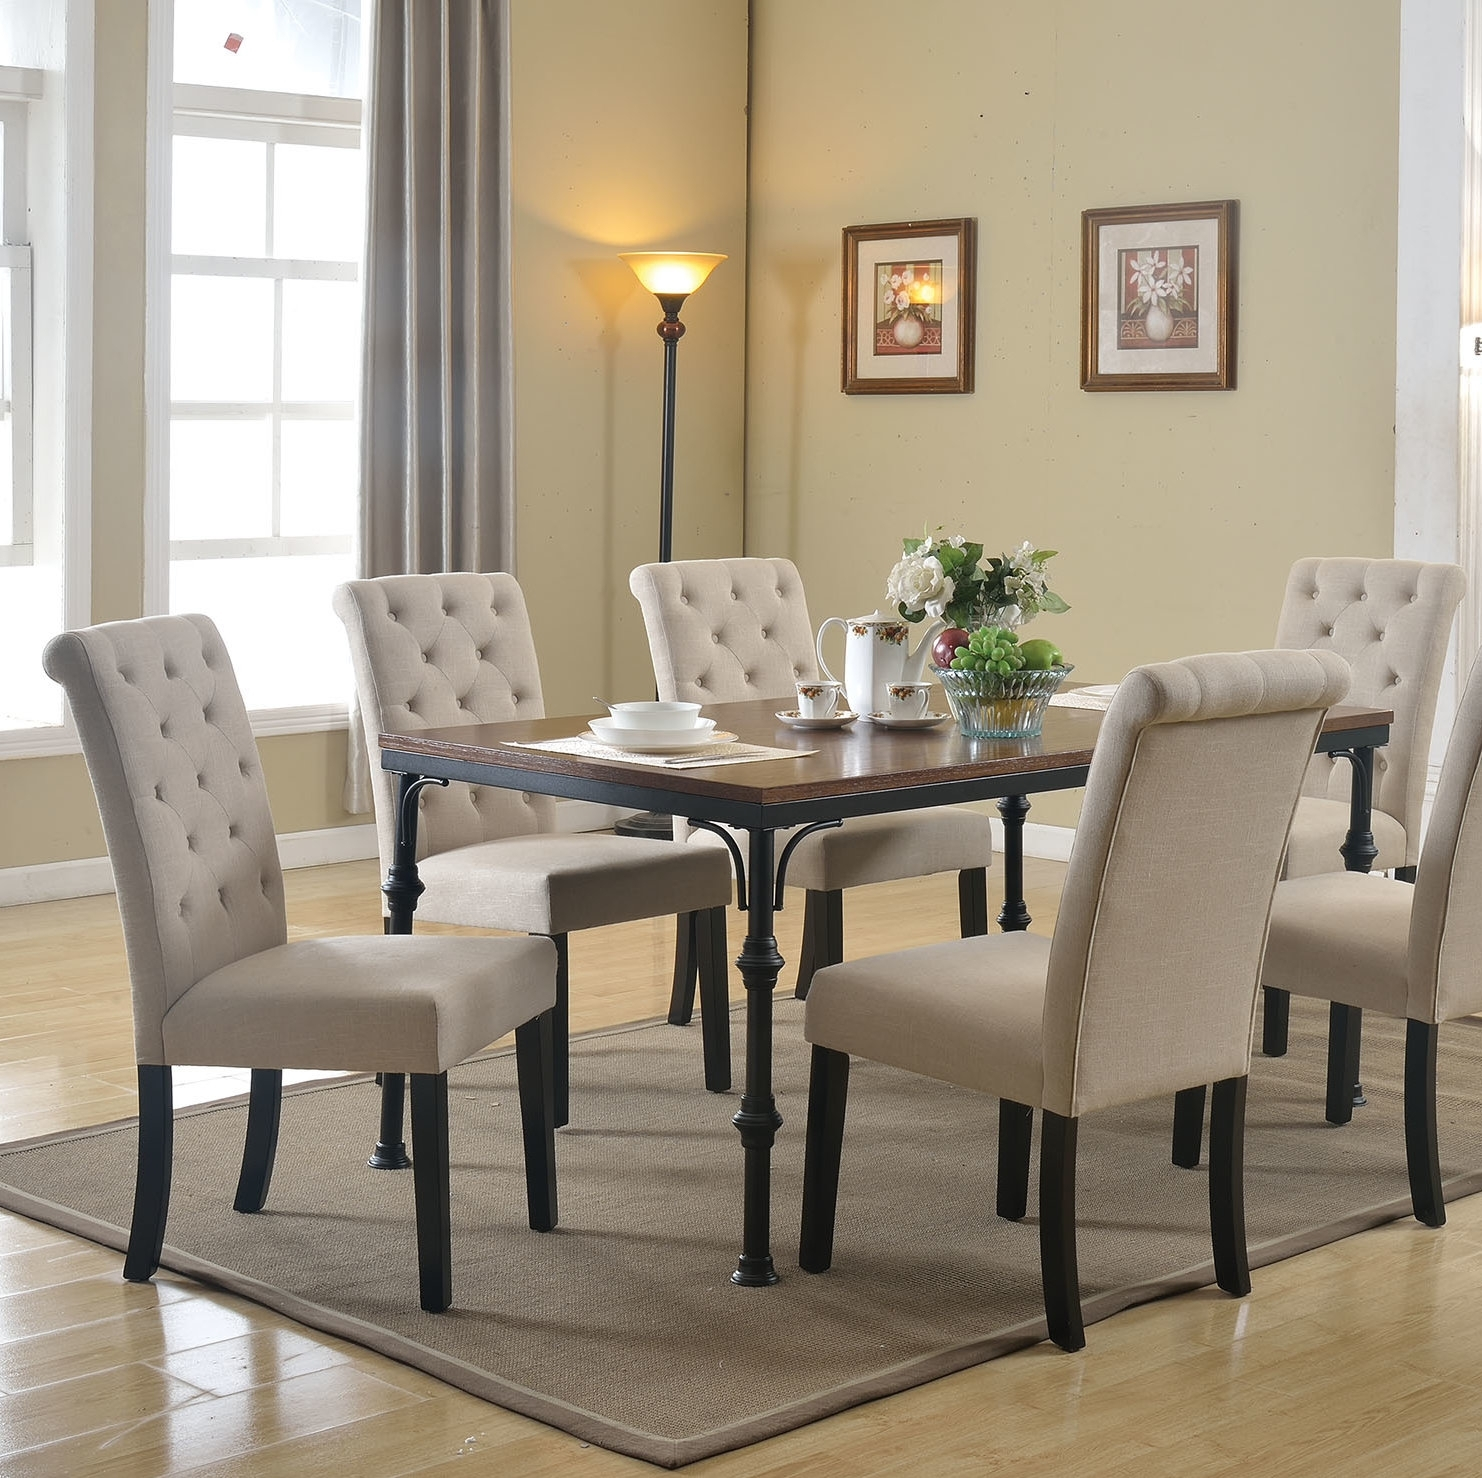 Gracie Oaks Tyerell 7 Piece Dining Set | Wayfair In Most Current Caira 7 Piece Rectangular Dining Sets With Upholstered Side Chairs (View 15 of 20)